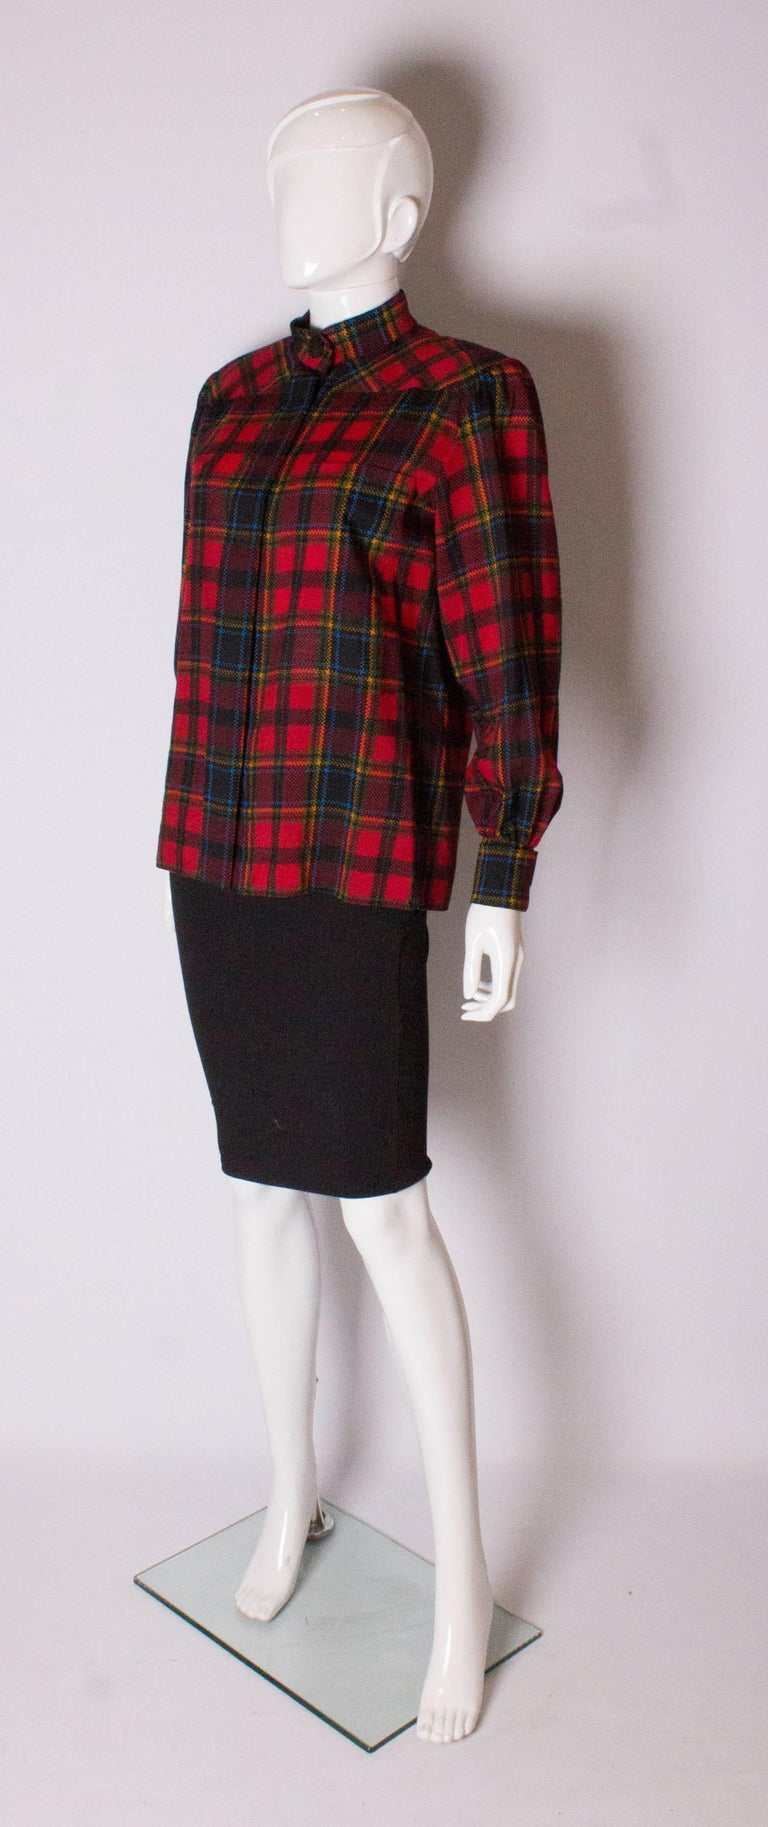 Yves Saint Laurent Red Check Blouse In Good Condition For Sale In London, GB